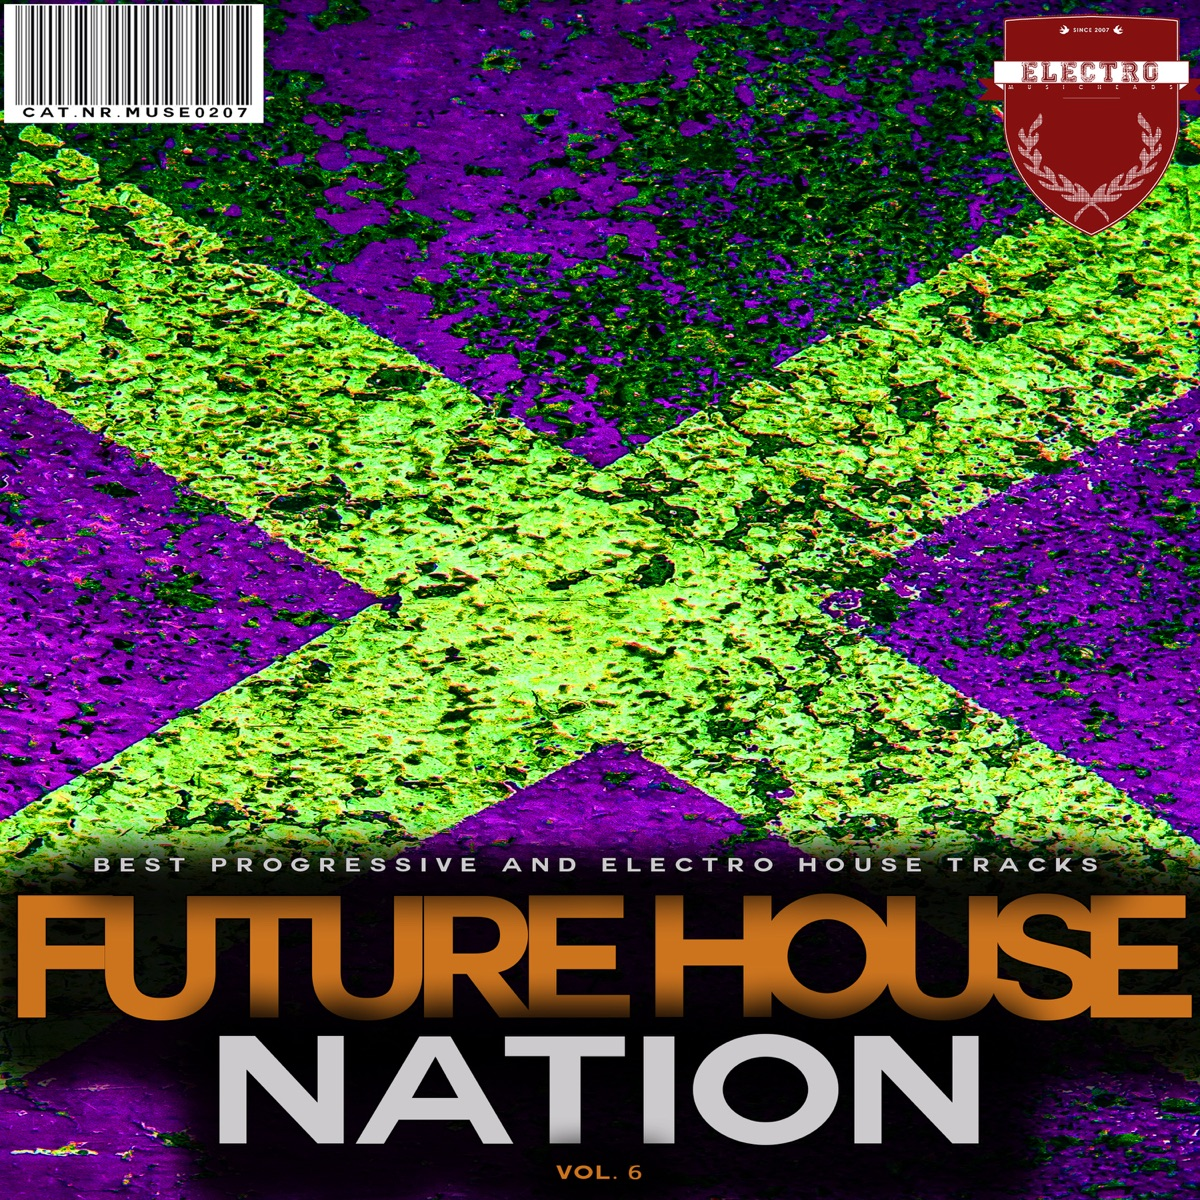 Future House Nation Vol 6 Various Artists CD cover